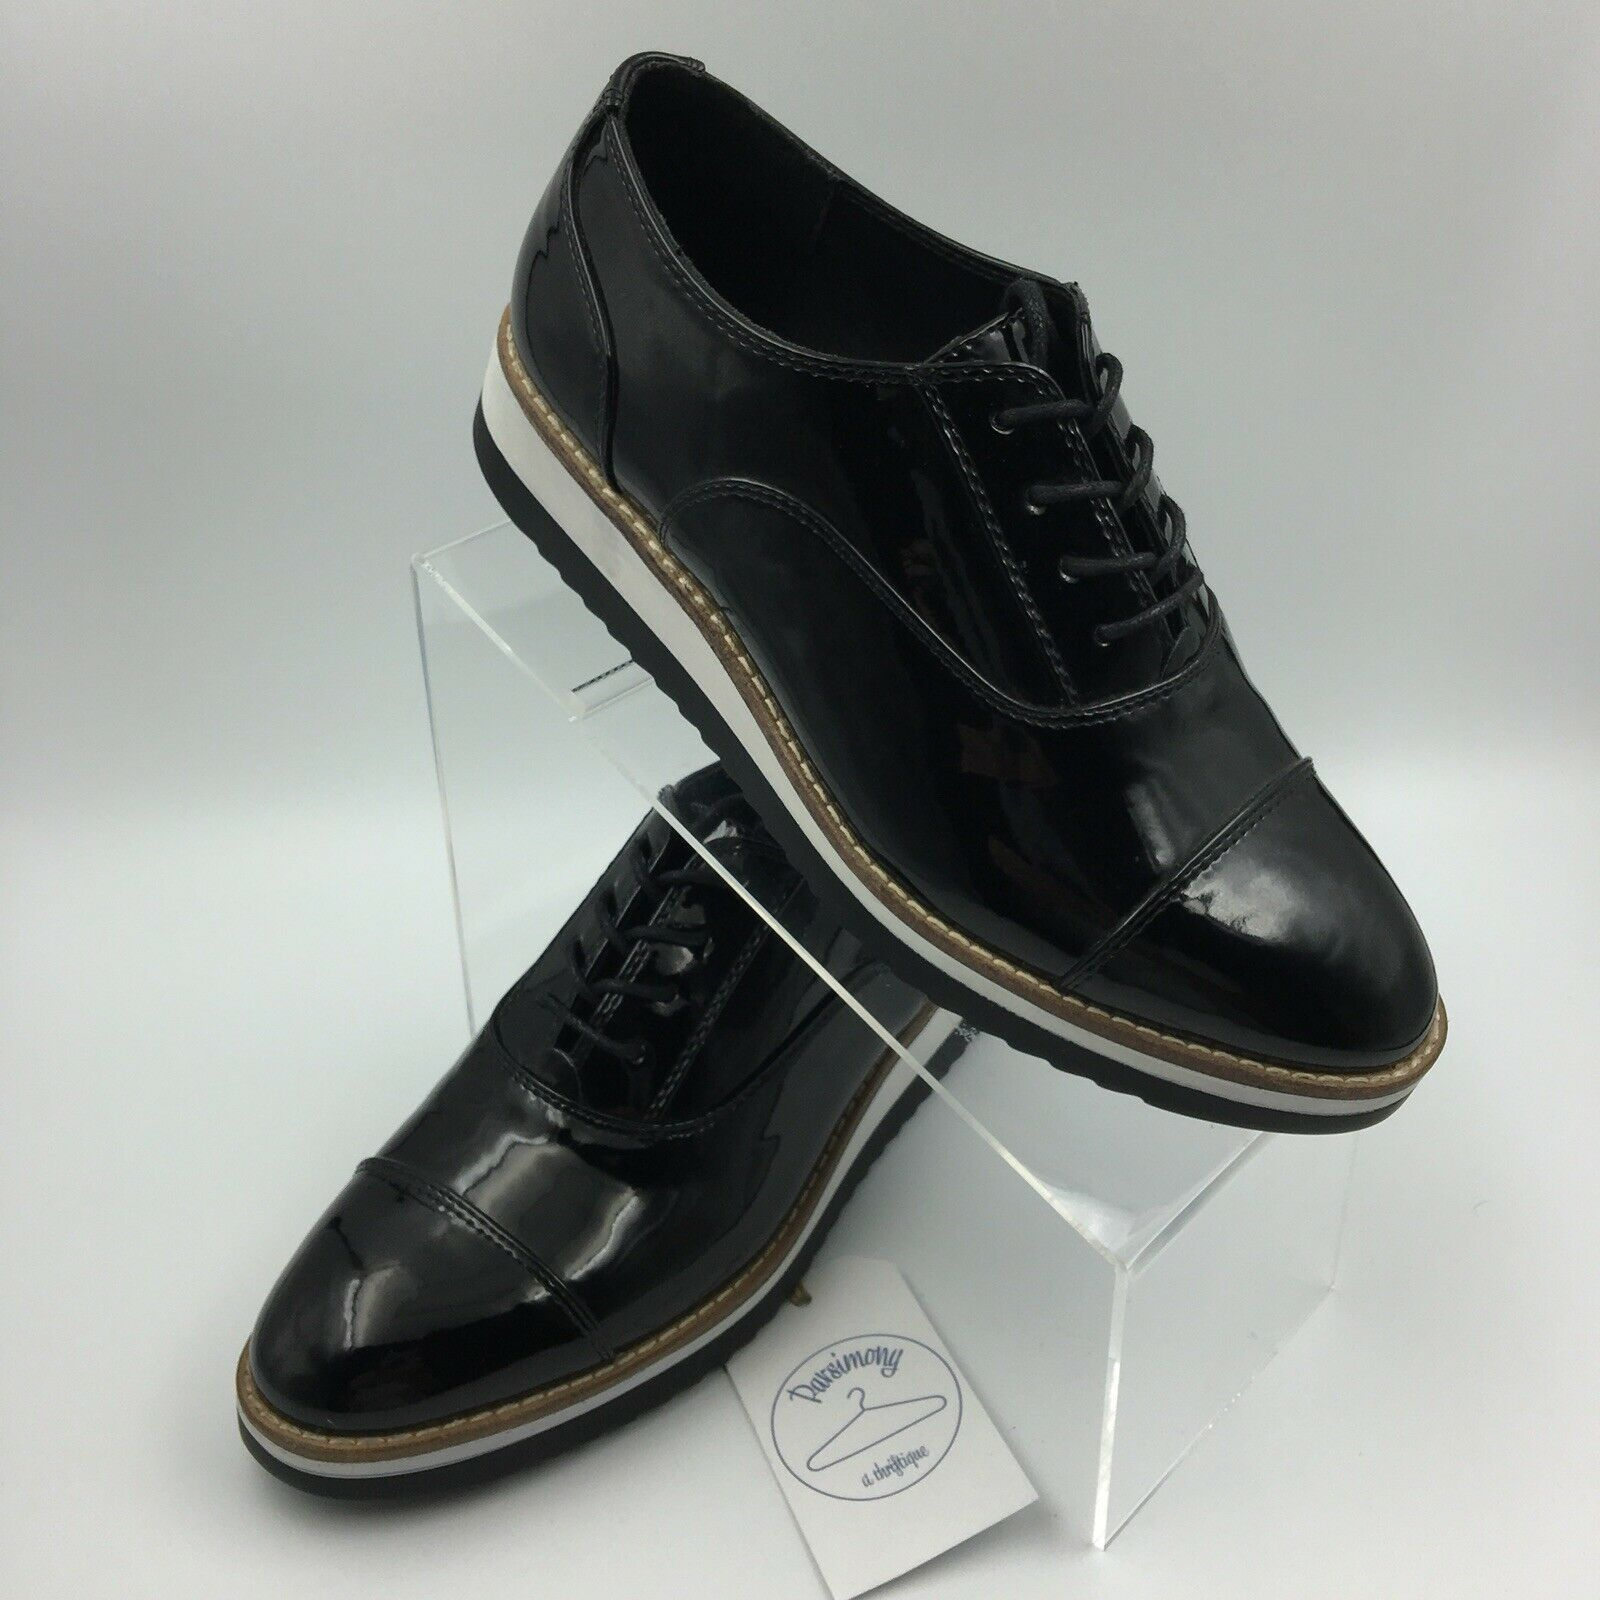 Sophie 17 Womens Shoes Size 9 Black Patent Leather Lace-Up Oxford Comfort